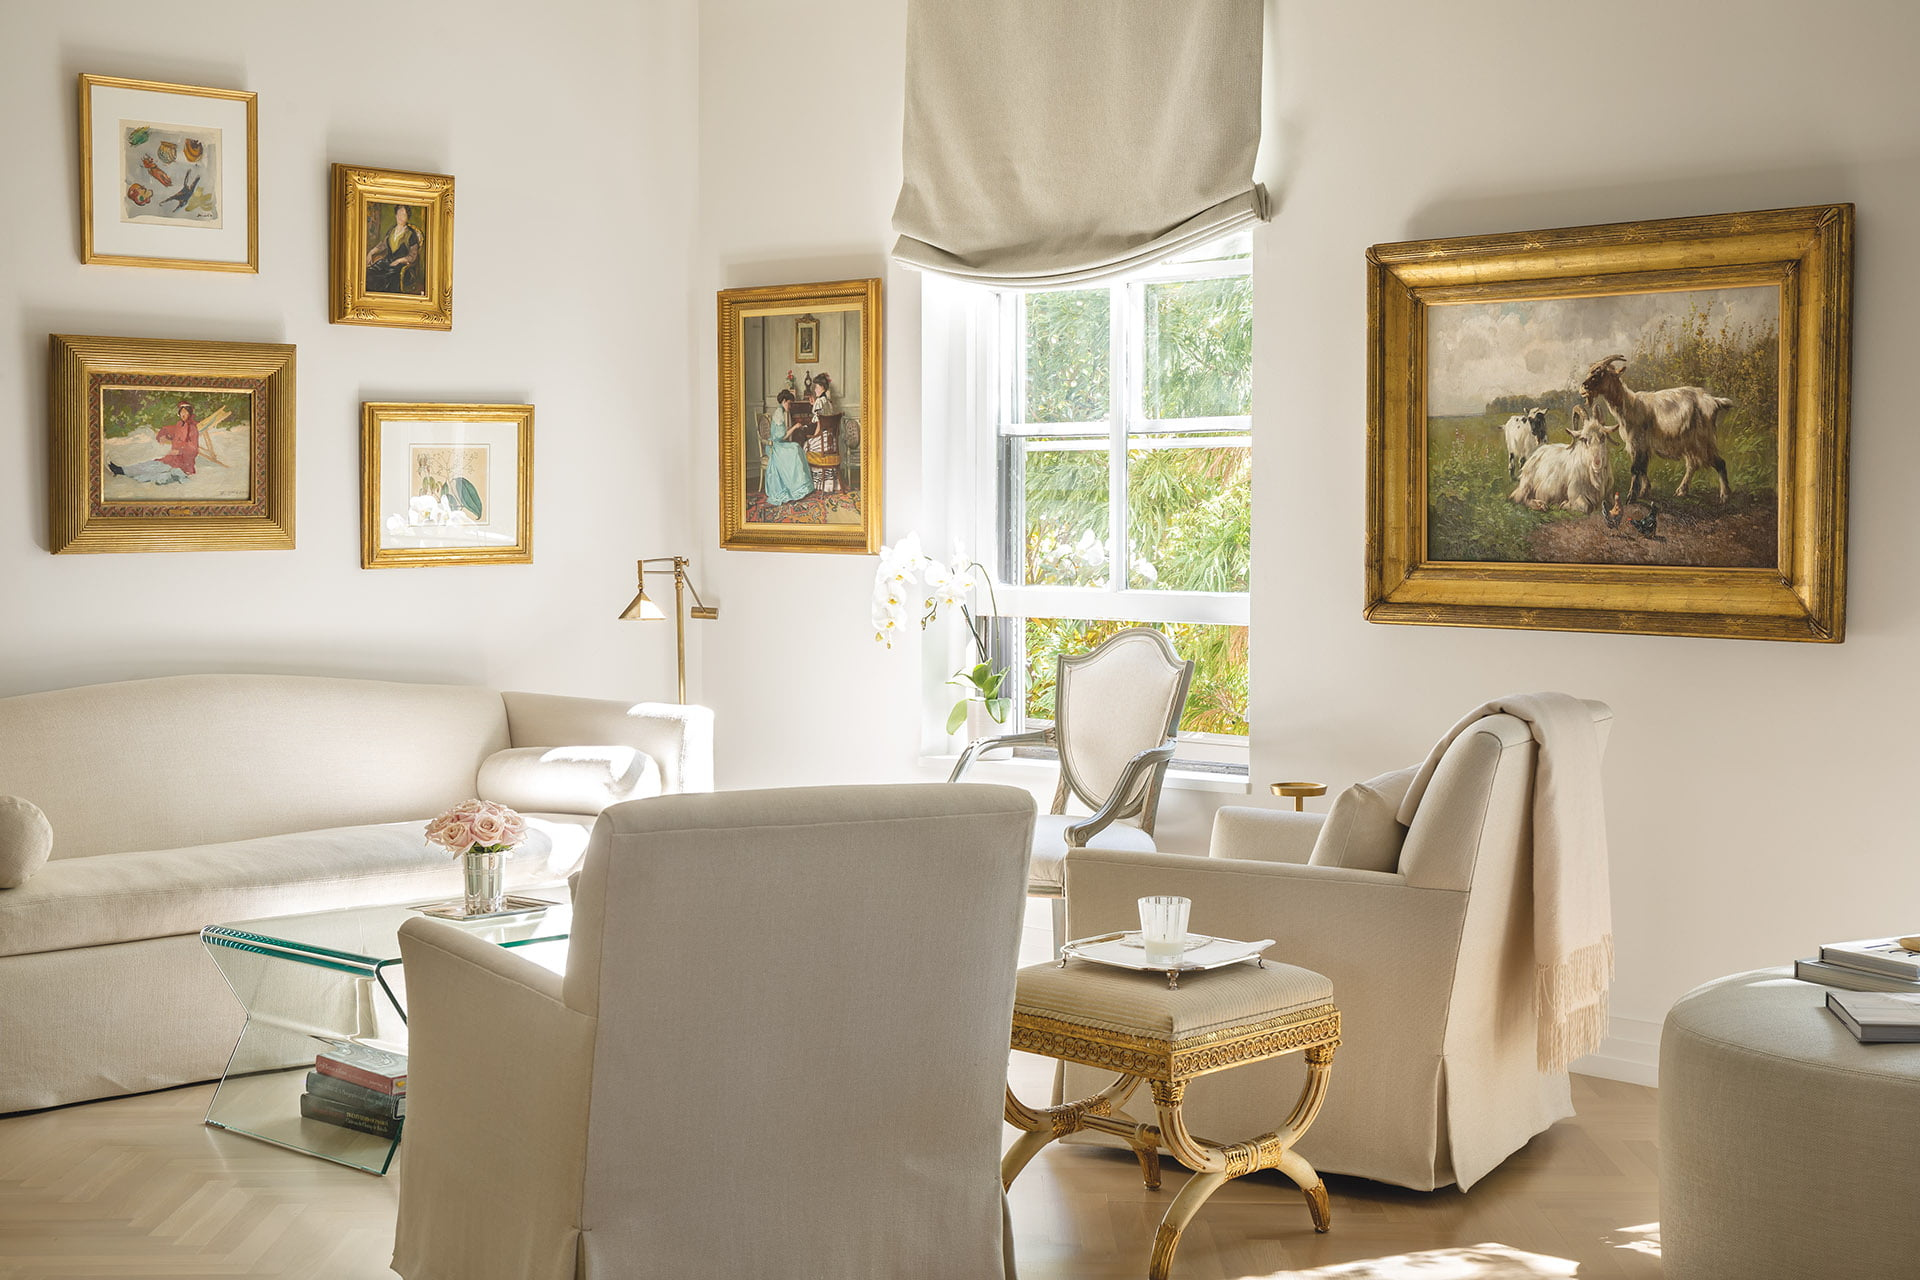 Martens grouped small, gilt-framed paintings salon-style on the wall above a Ferrell Mittman sofa in living area